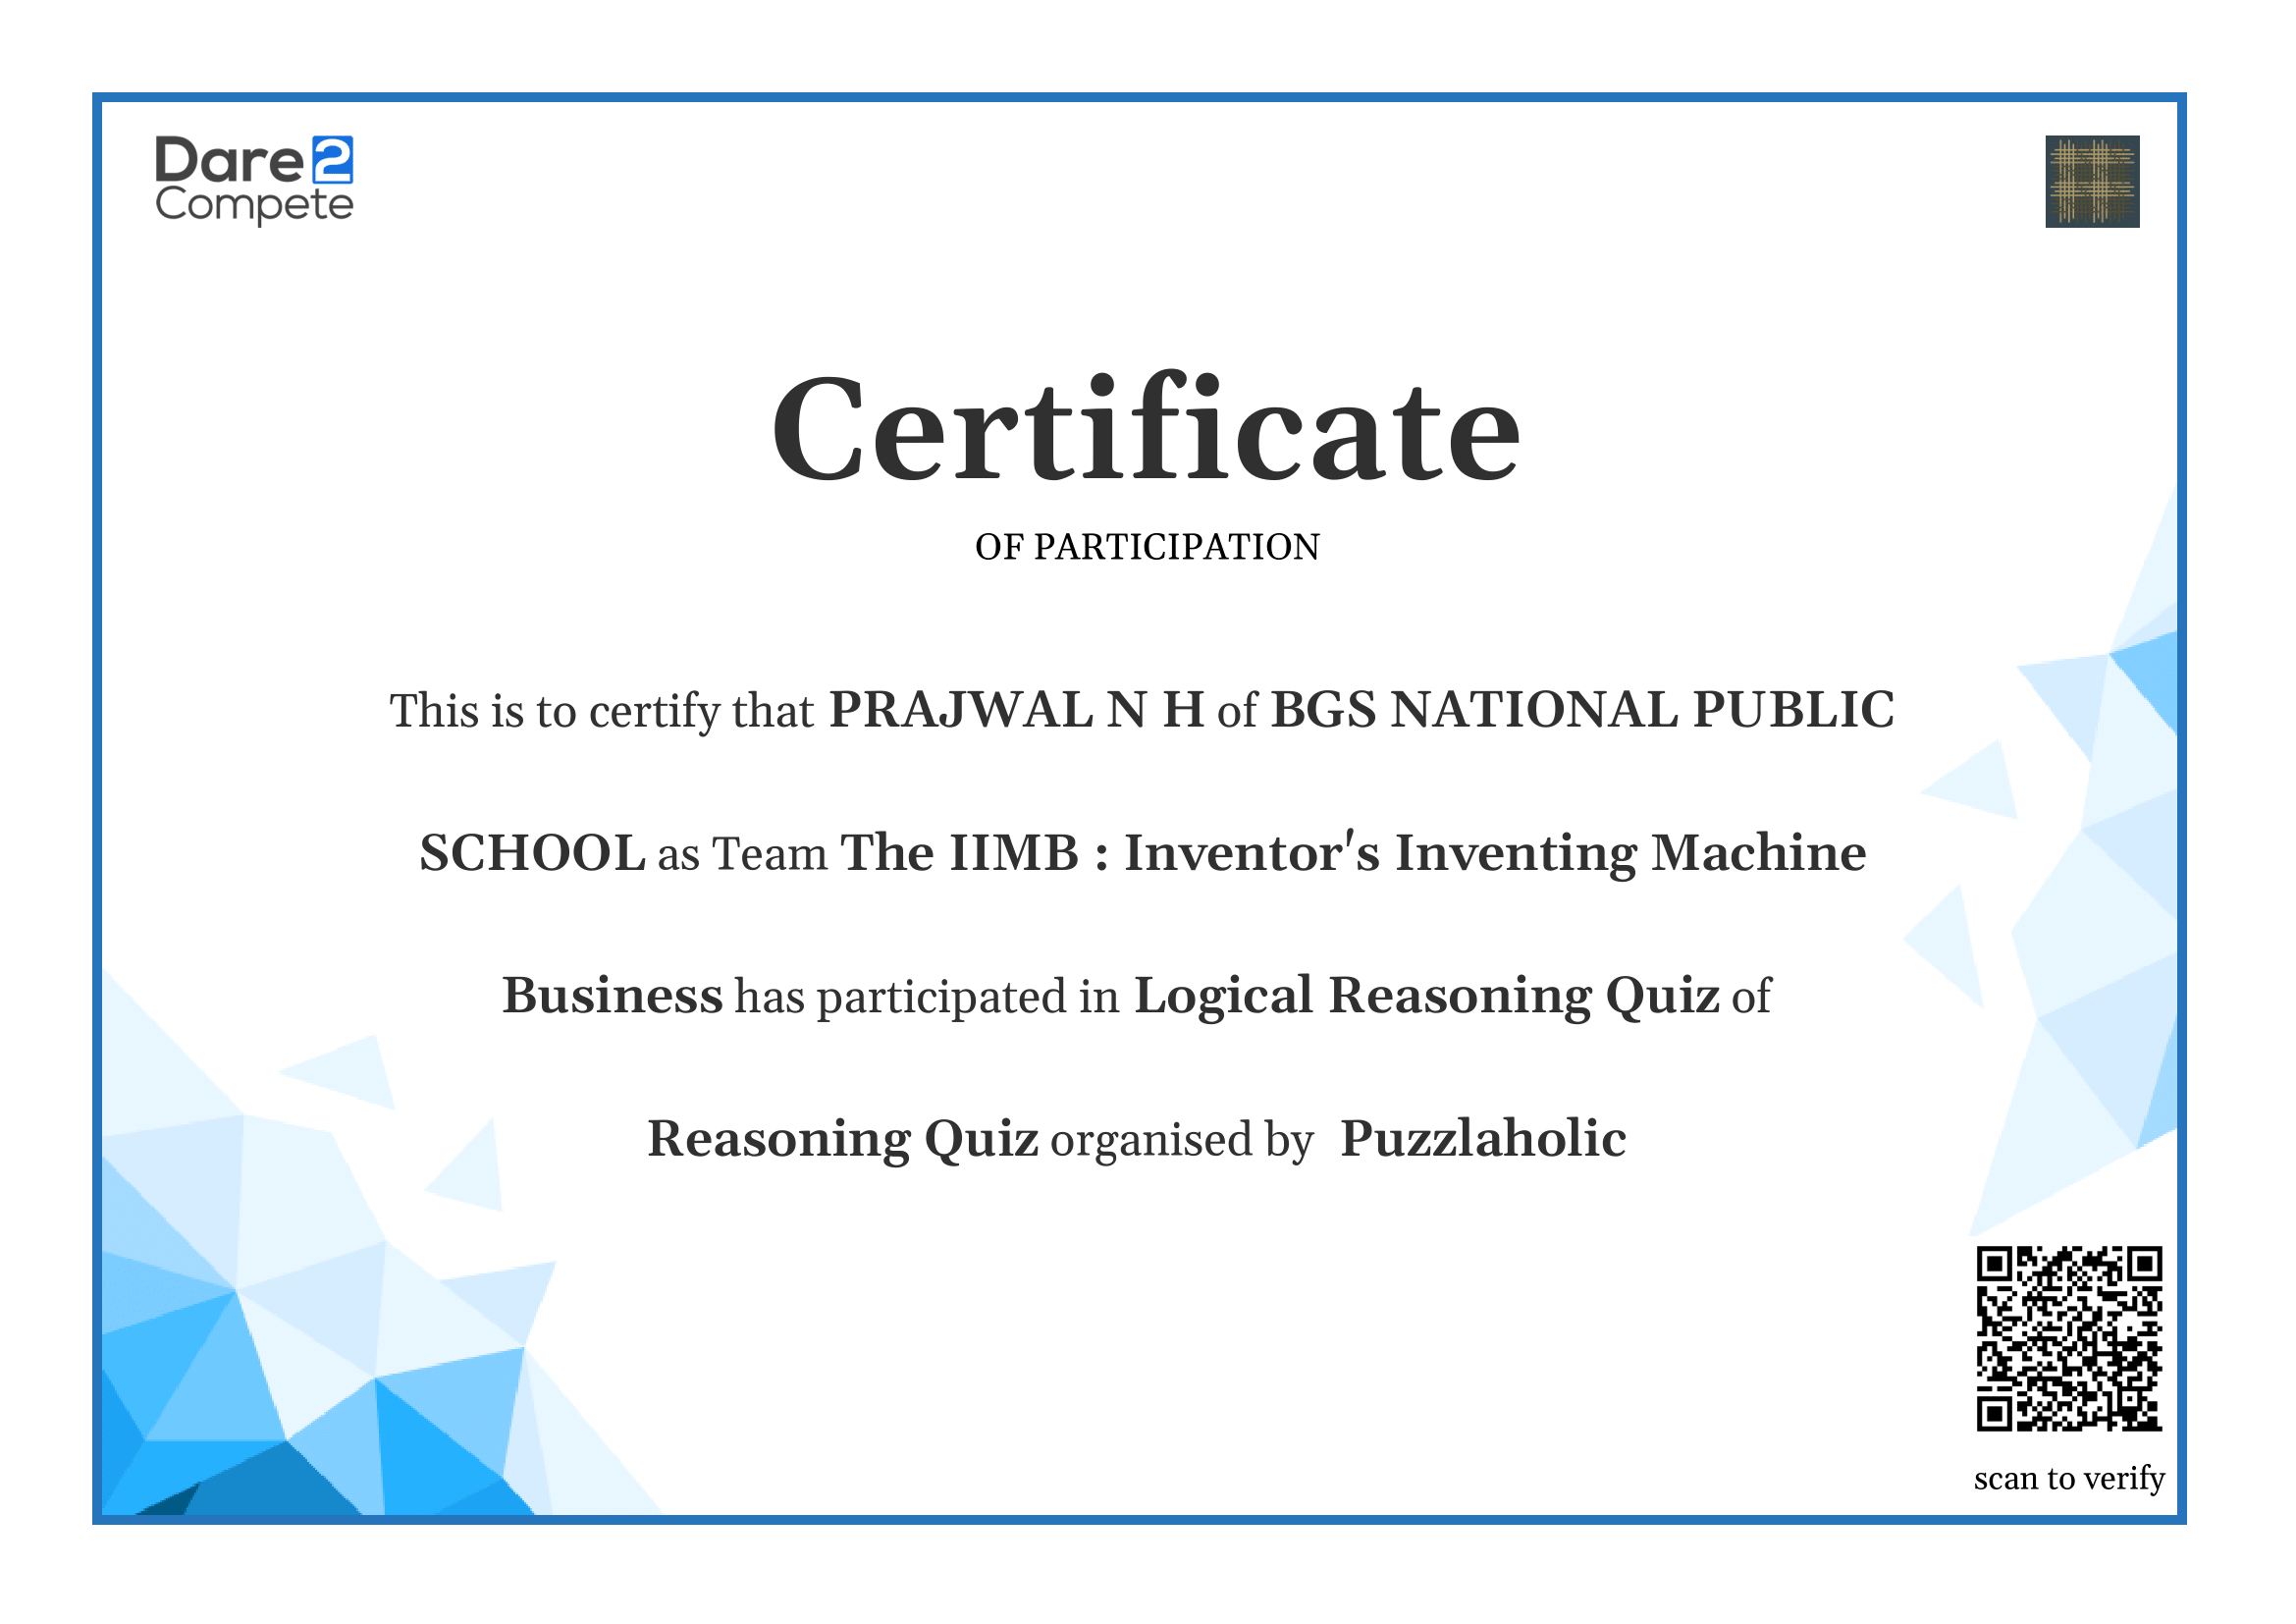 Participation Certificate for logical reasoning quiz